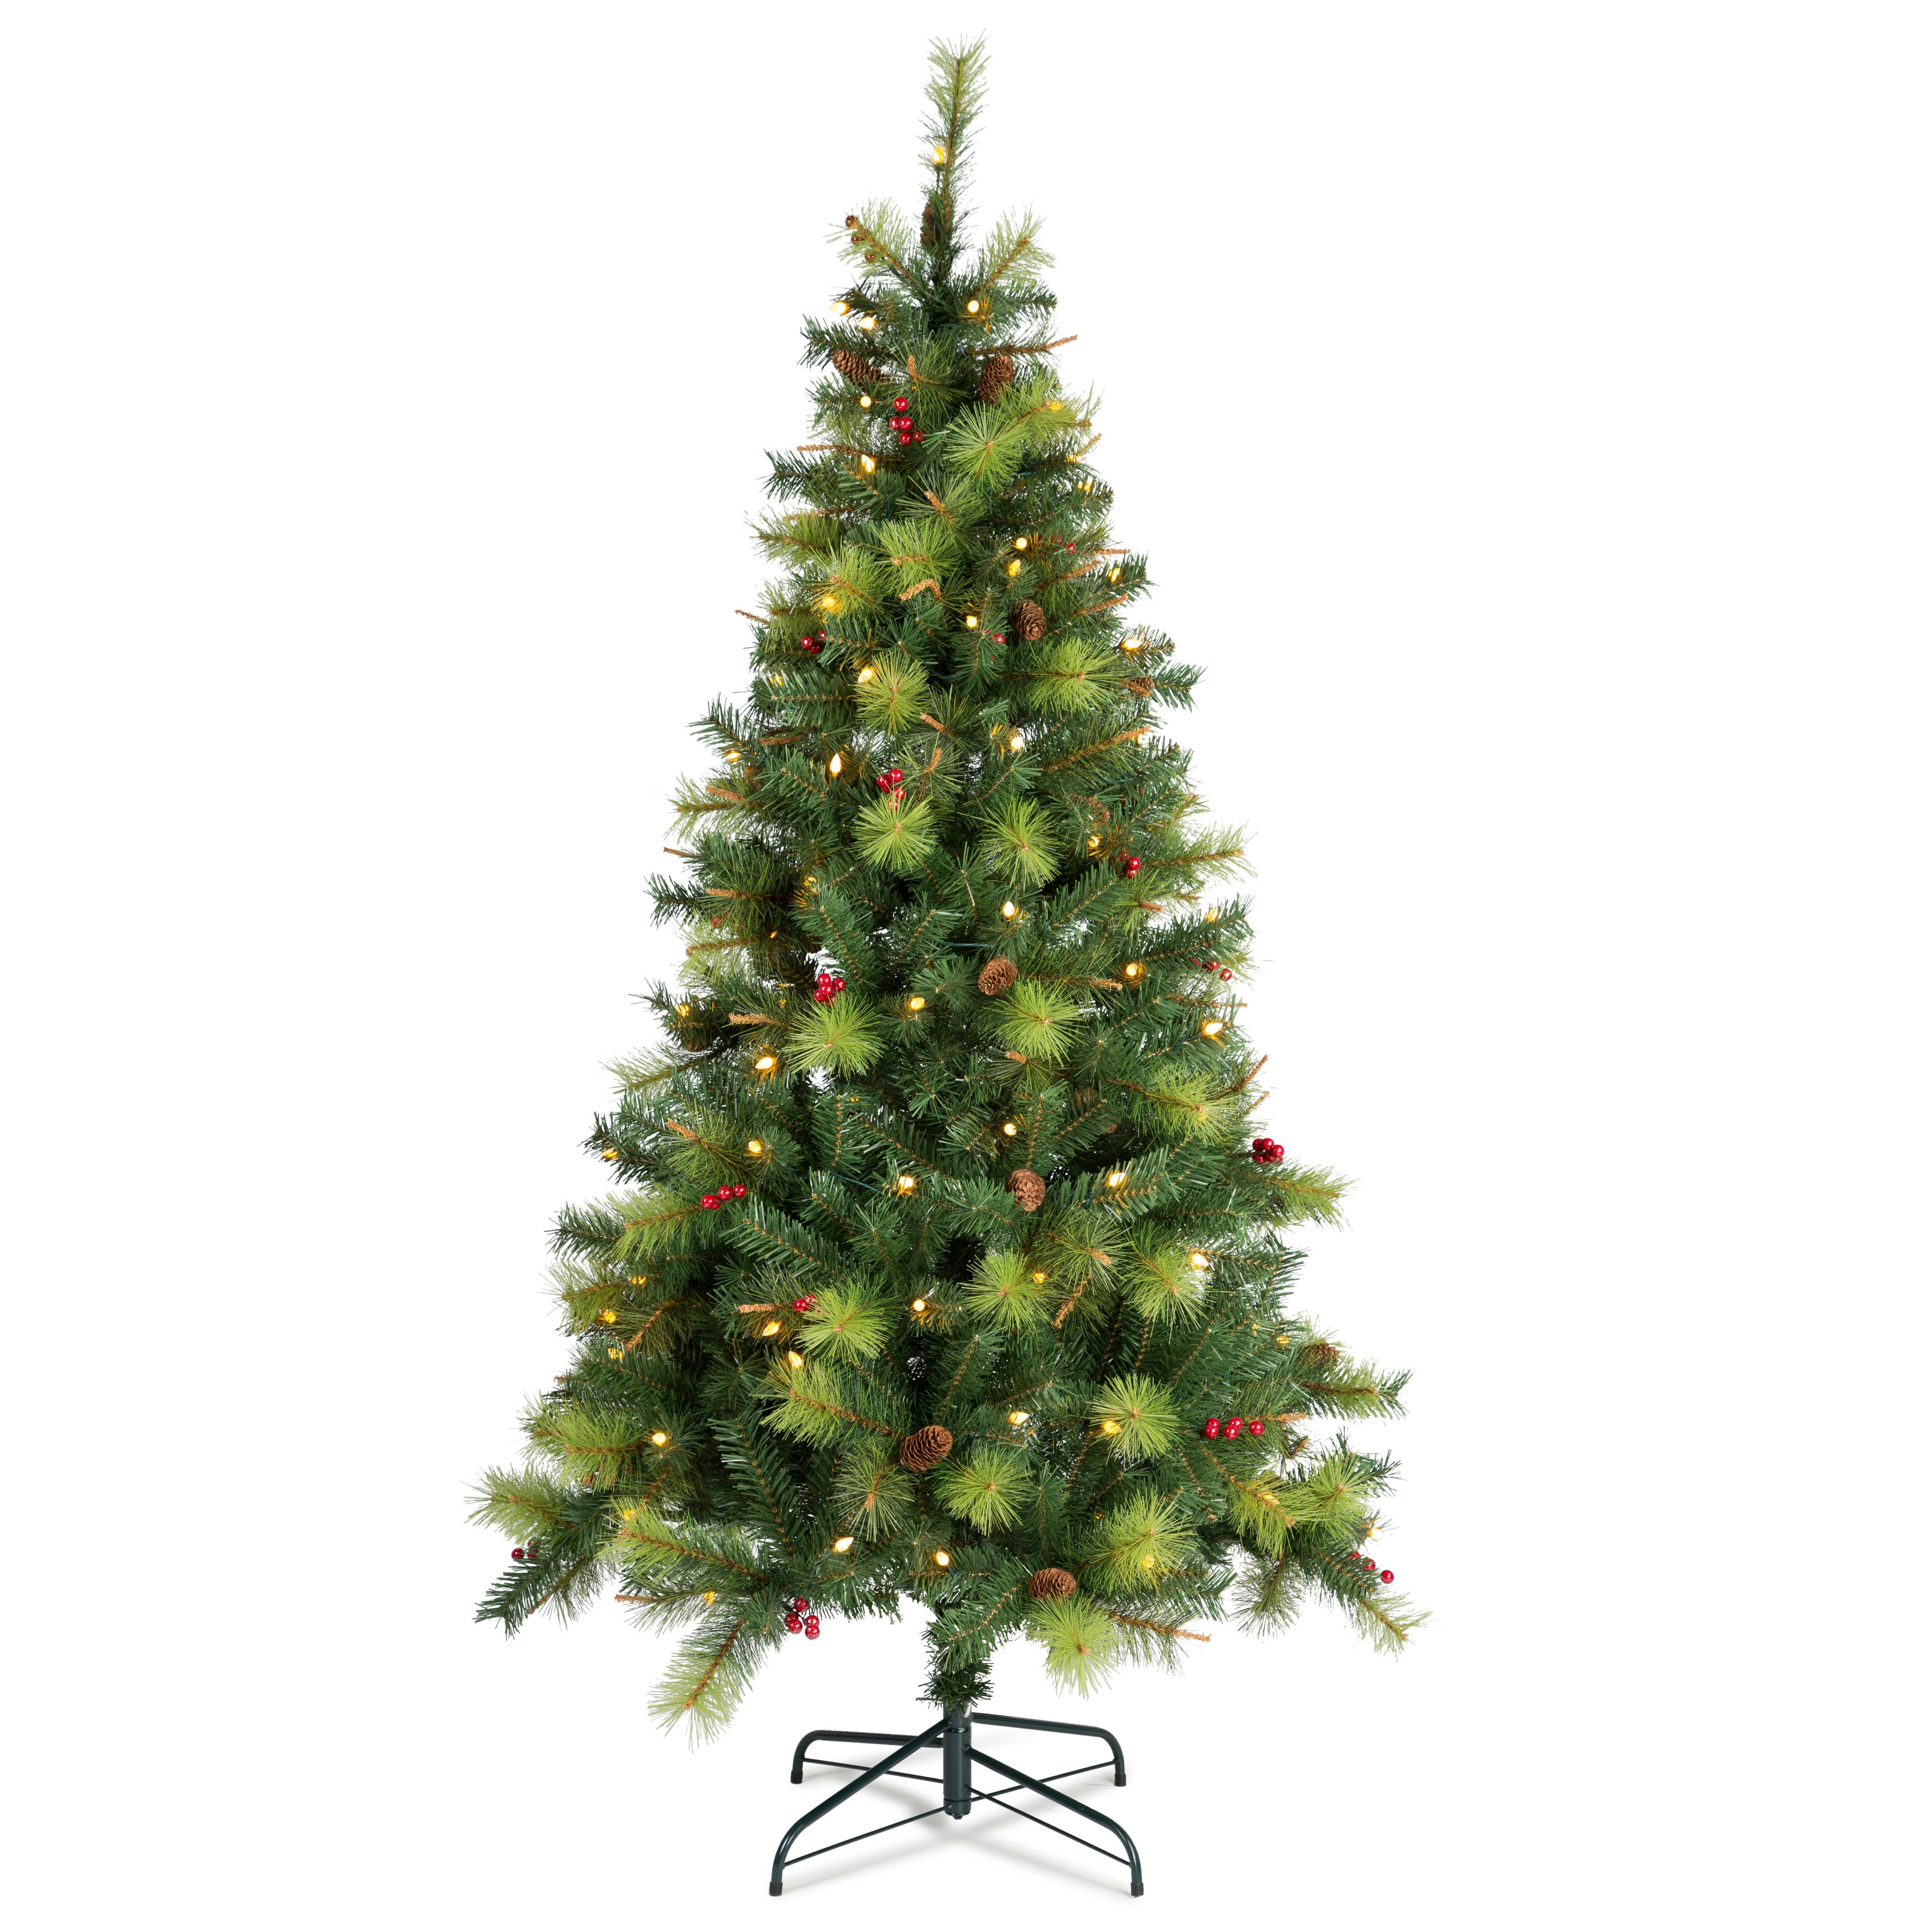 Columbia Christmas Tree: 6ft 6in Columbia Pre Lit LED Christmas Tree